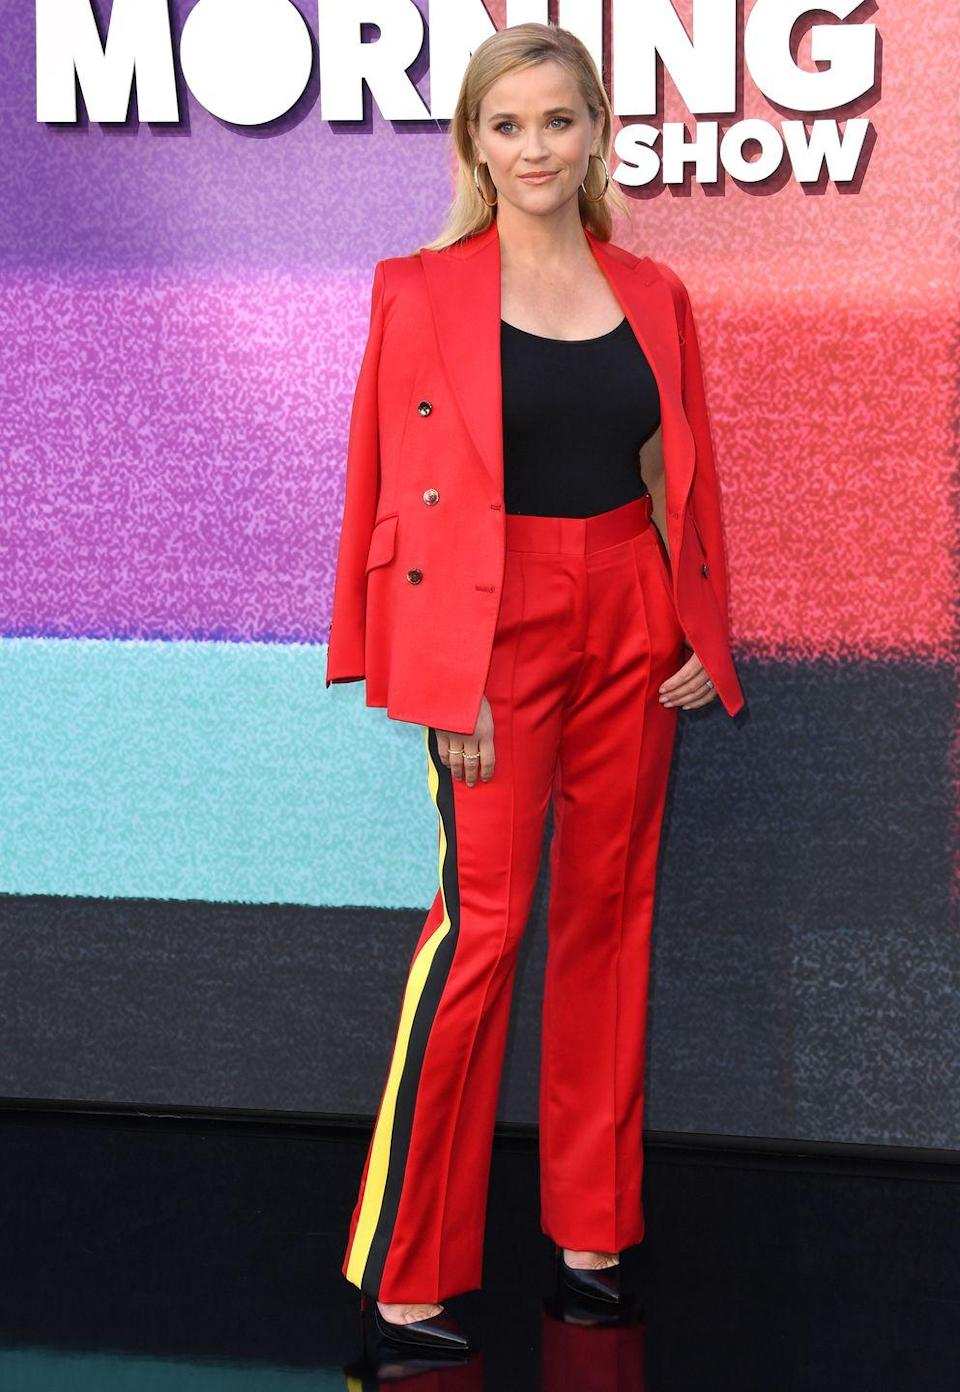 <p><strong>8 September </strong><br></p><p>Reese Witherspoon made a case for the red suit at The Morning Show photocall in Los Angeles. </p>